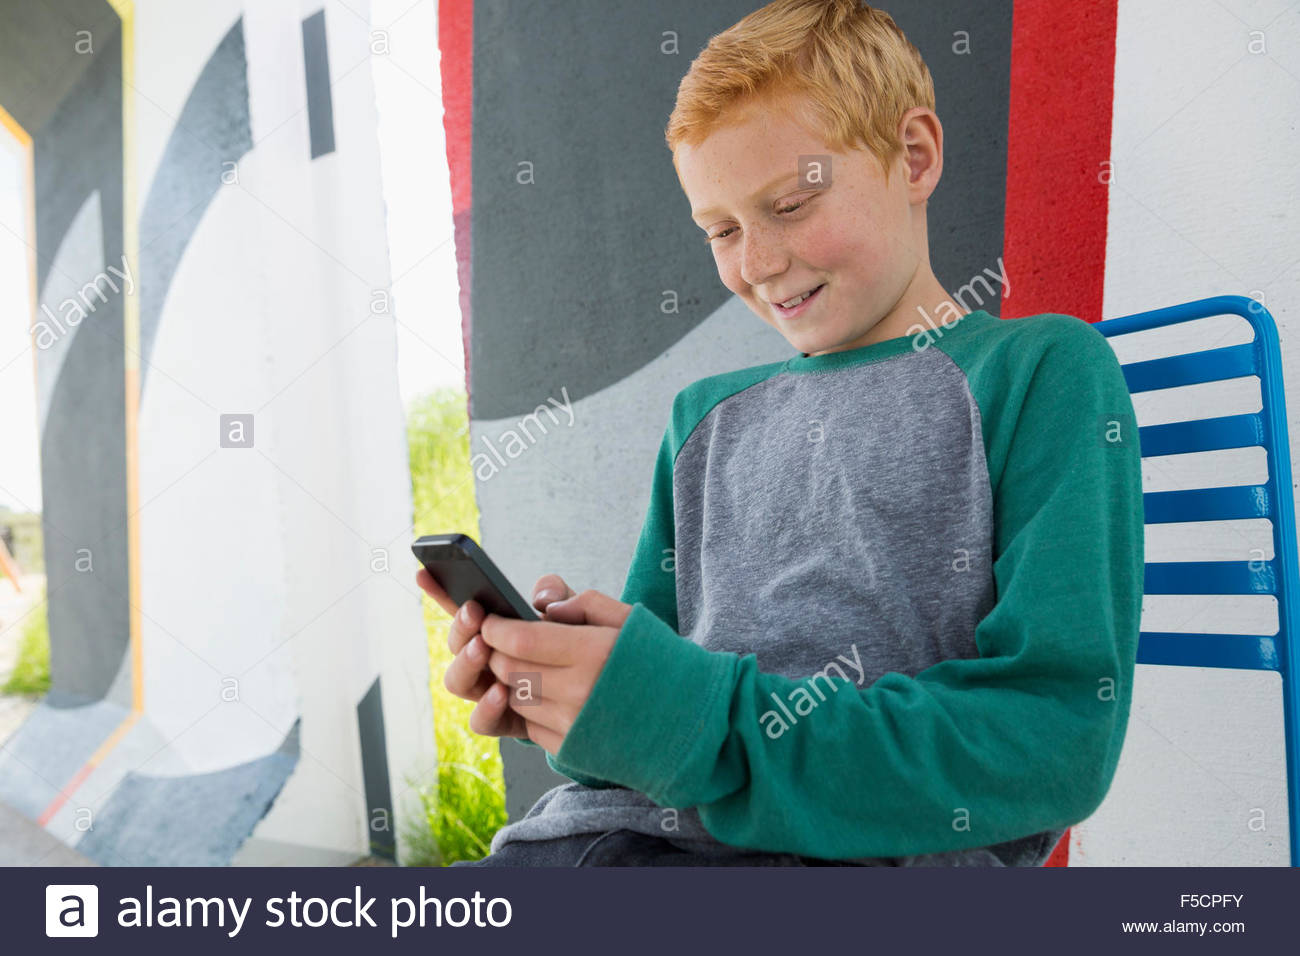 Boy with red hair texting with cell phone - Stock Image